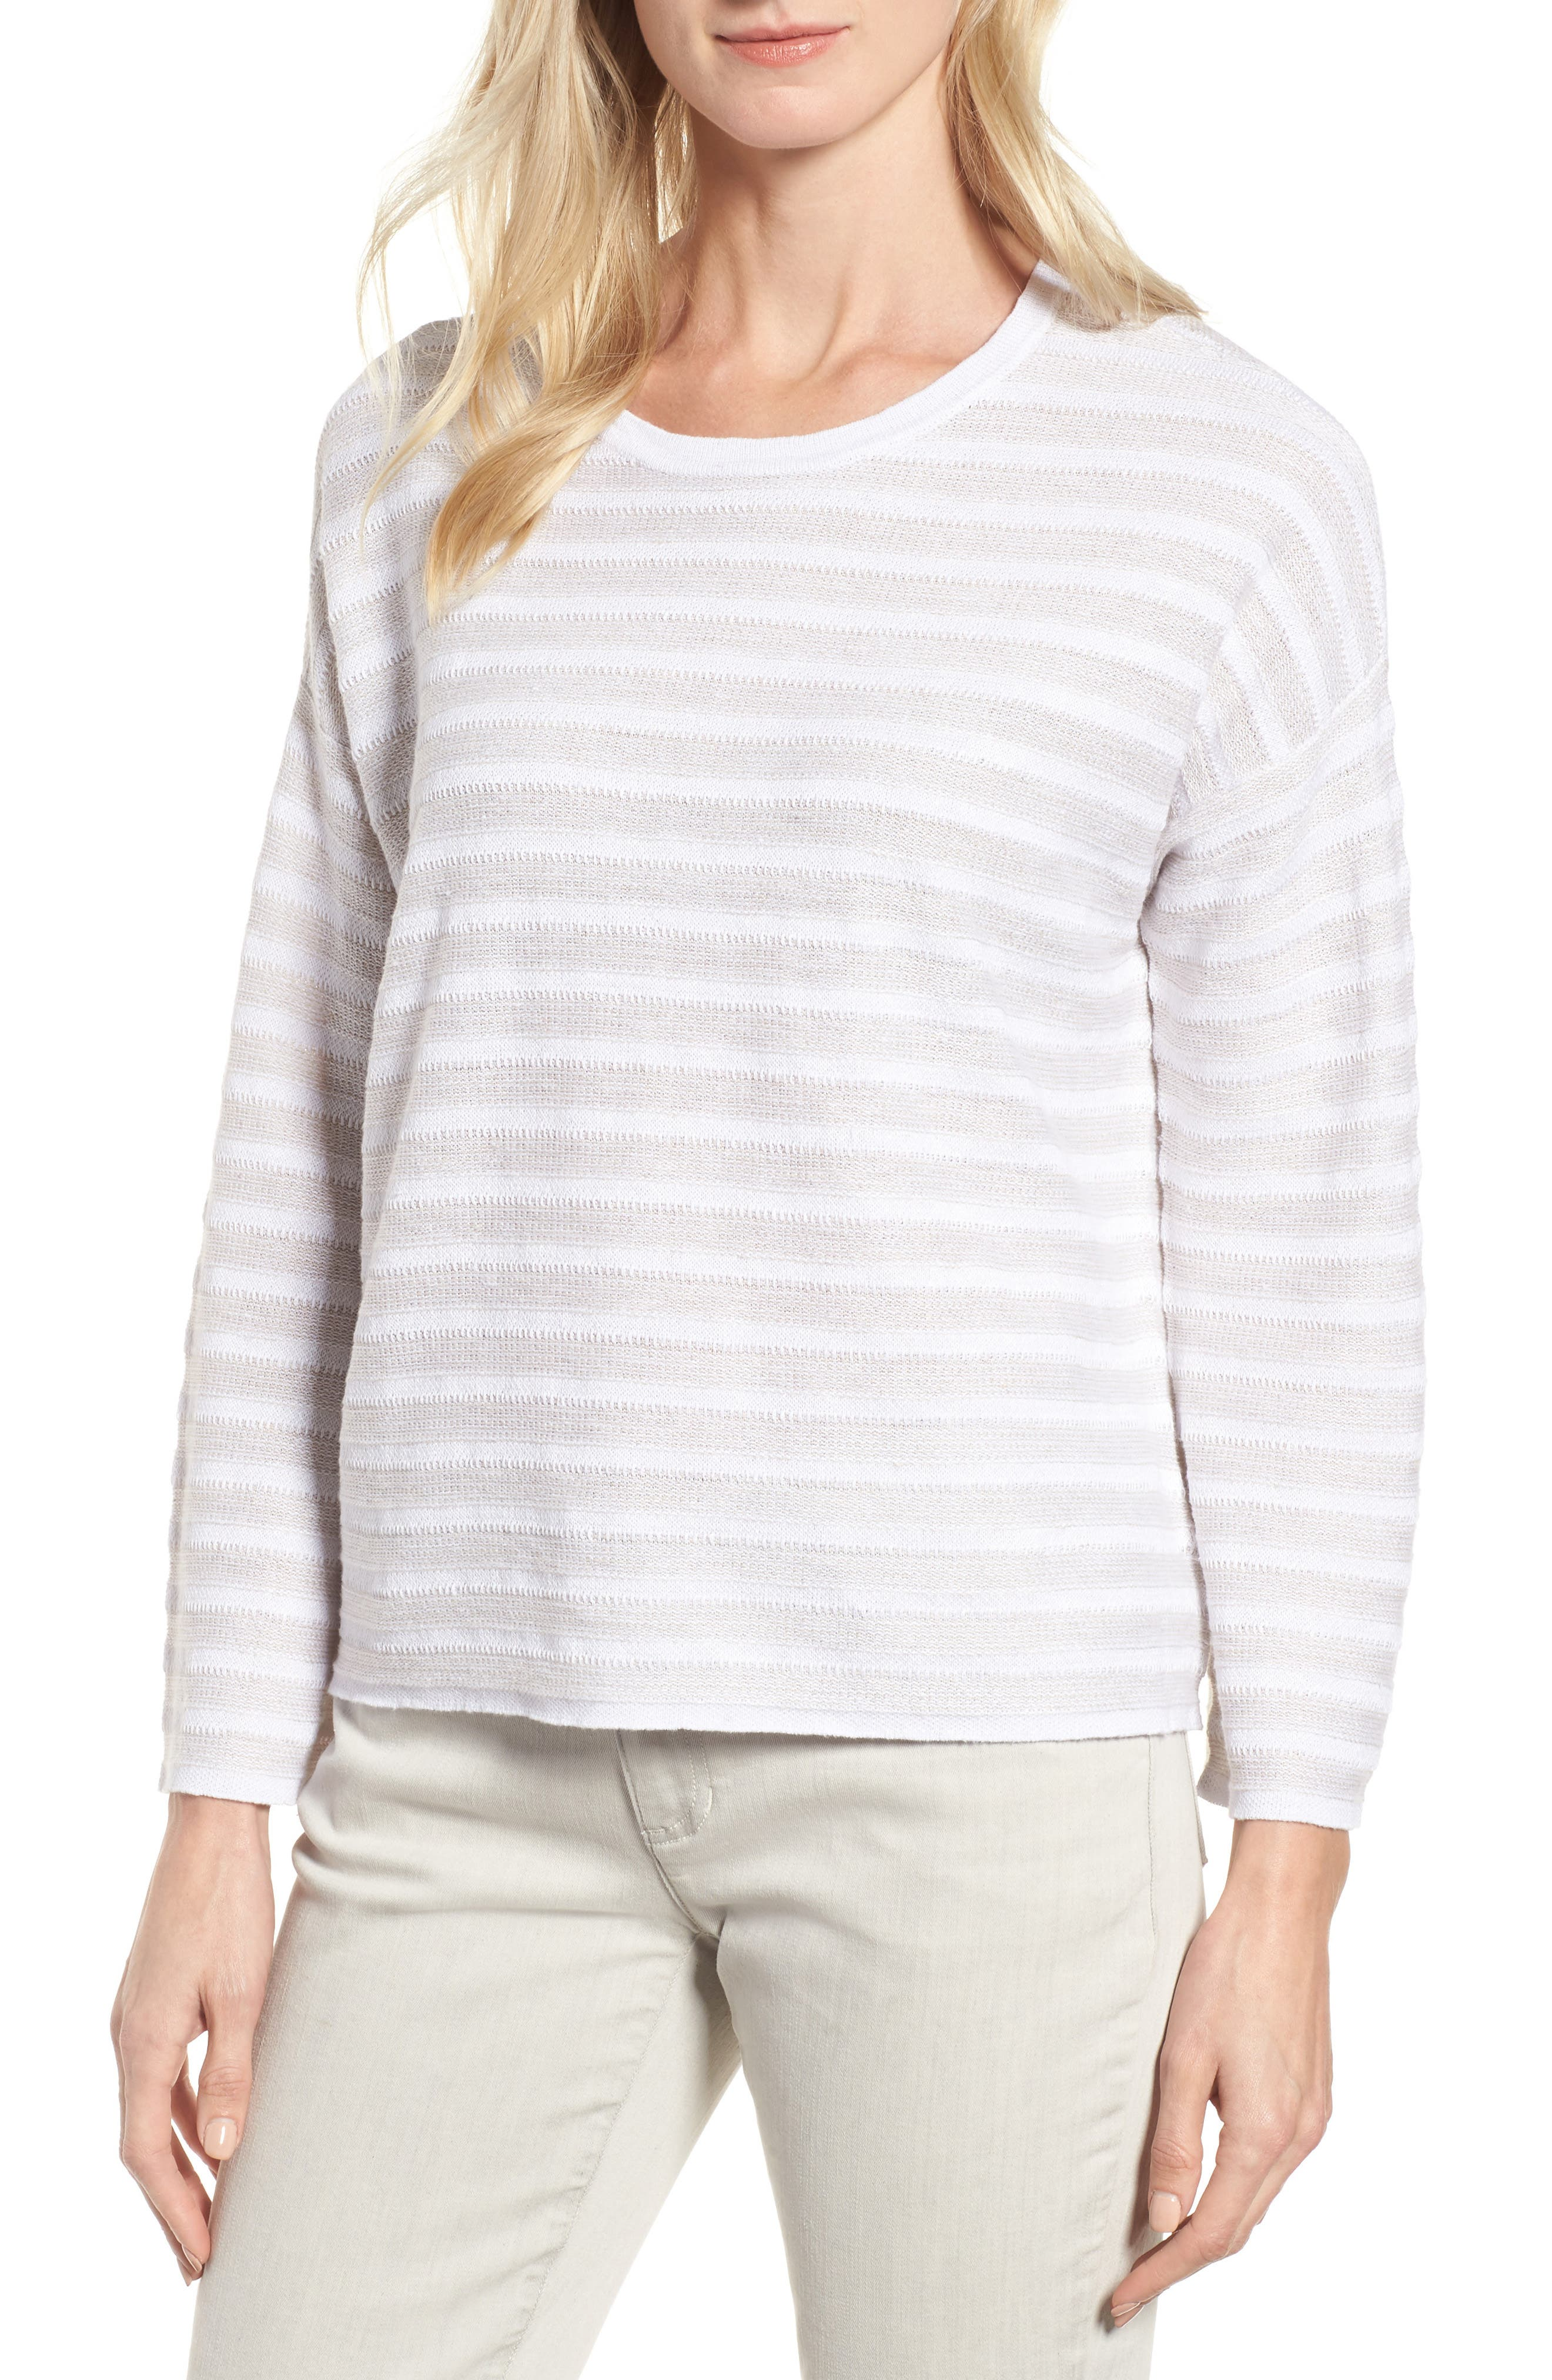 Alternate Image 1 Selected - Eileen Fisher Textured Organic Linen Sweater